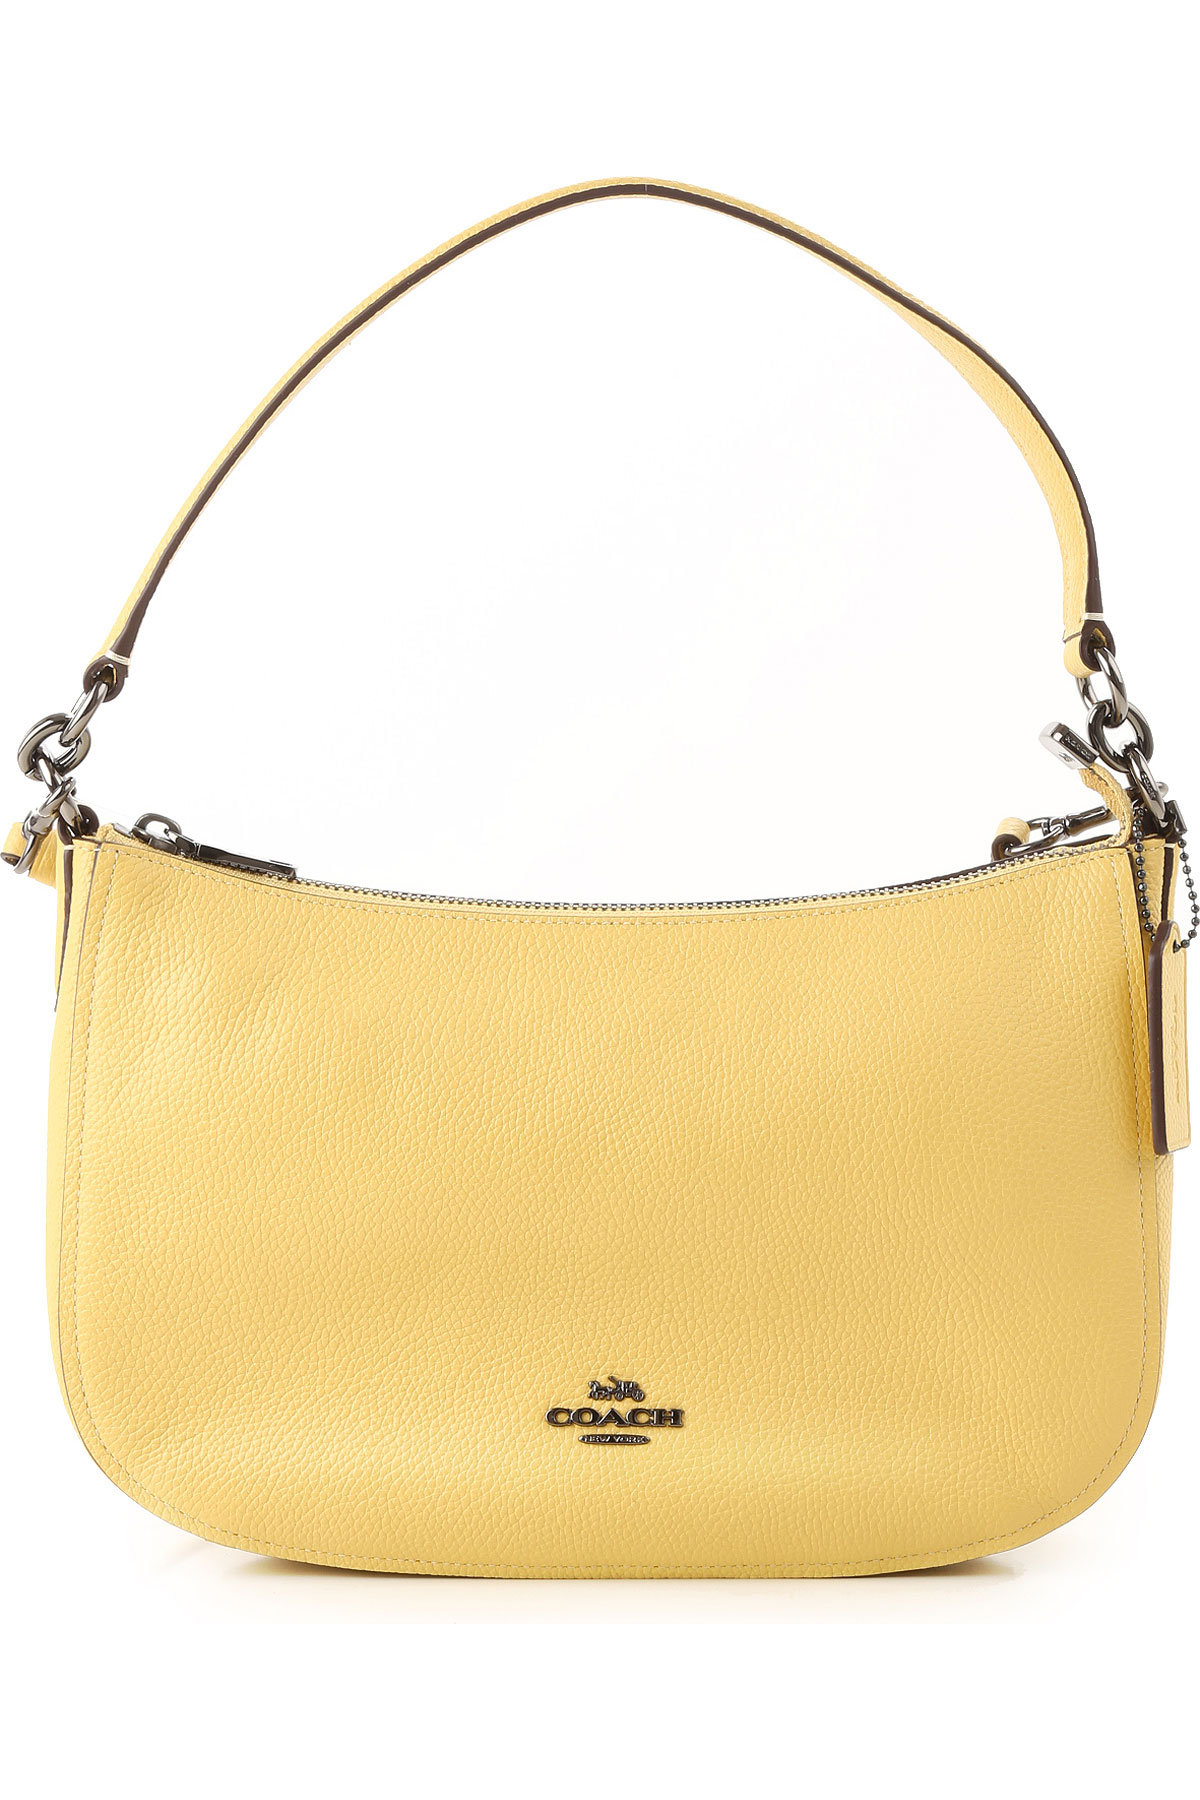 Coach Shoulder Bag for Women On Sale, Sunflowers, Leather, 2019